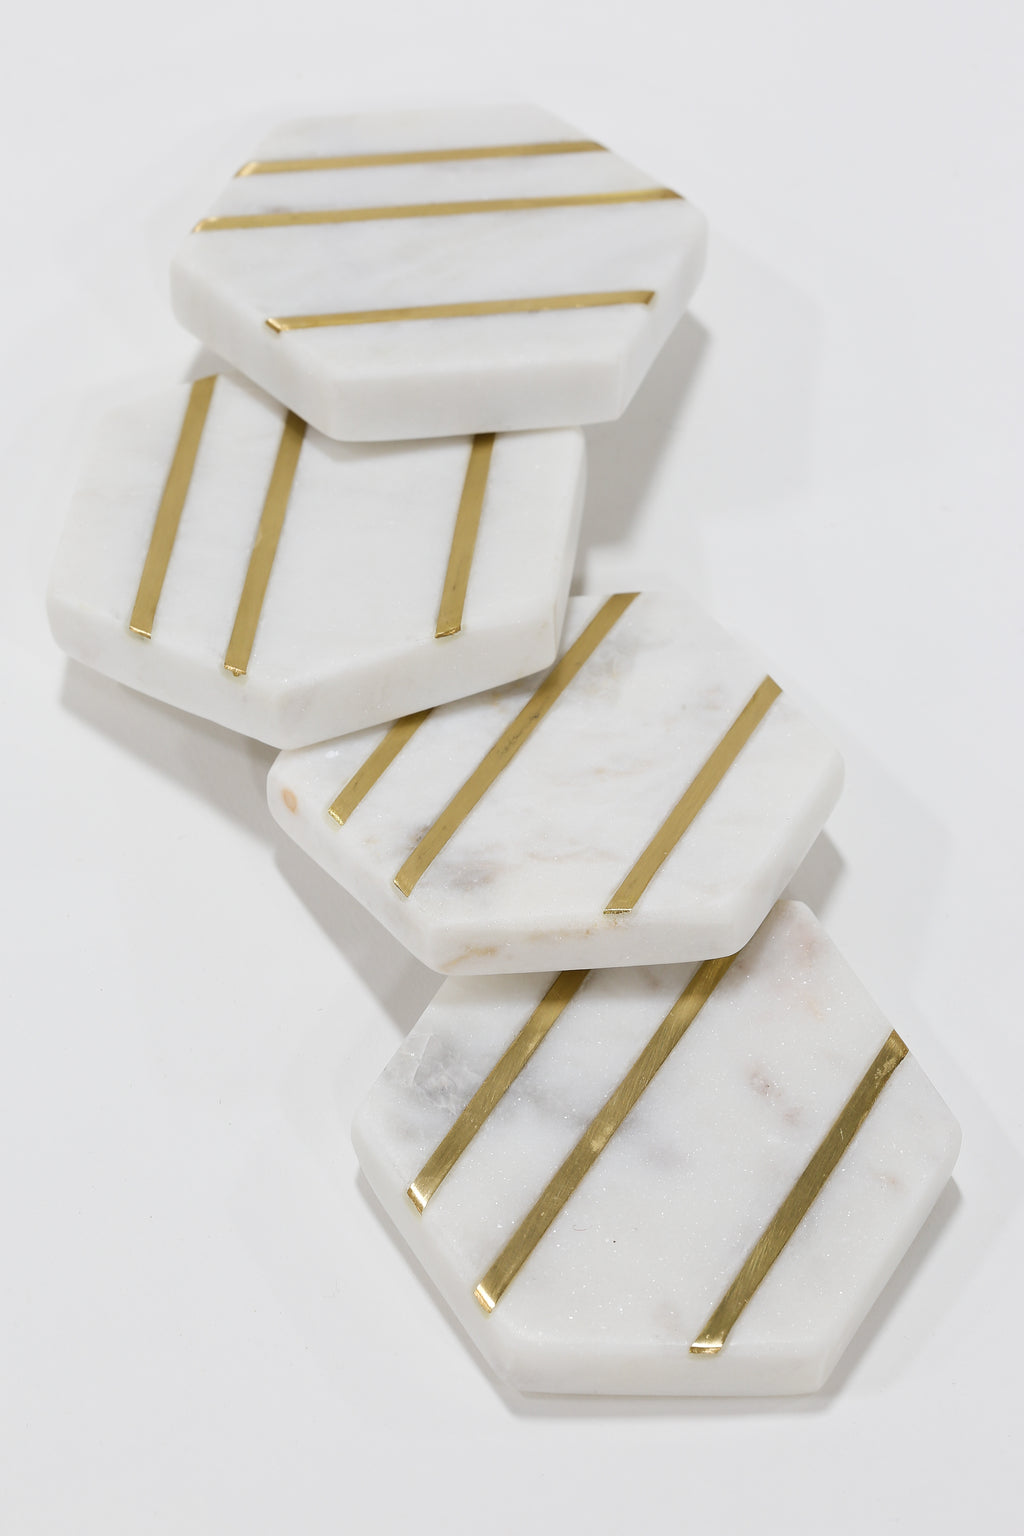 Marble Hexagon Coasters with Gold Inlay (Set of 4)-Inspire Me! Home Decor